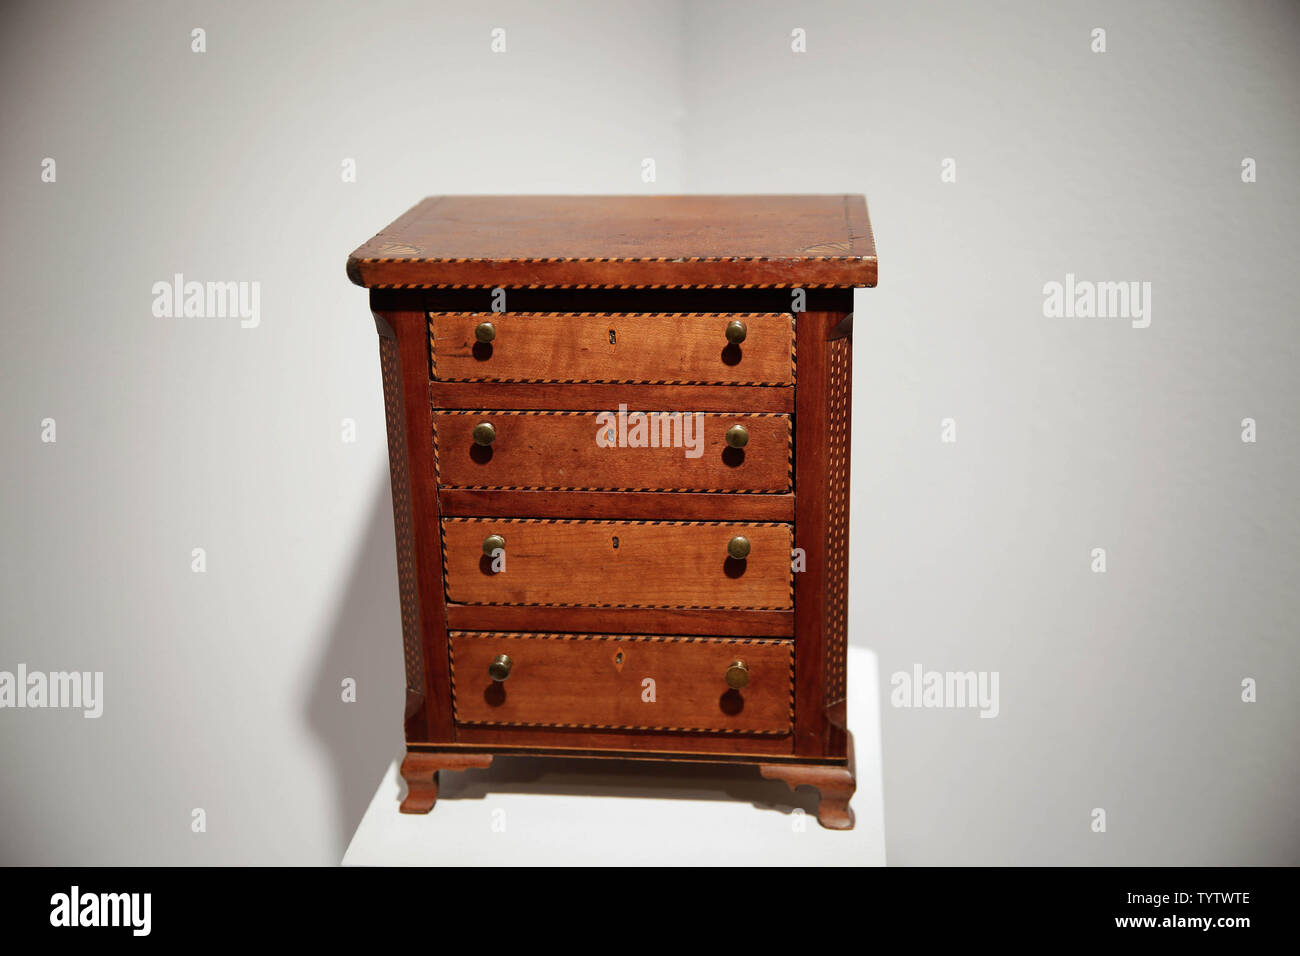 A small wooden chest is on display at a press preview of auction titled 'Important American Furniture, Folk Art, Silver and Prints' at Christie's in New York City on January 12, 2019. The auction features Ammi Phillips' 'Girl in a Red Dress with a Dog', and Edward Hicks' 'Peaceable Kingdom, both estd $800,000 - $1.2 million. The auction takes place on January 17th and 18th.     Photo by John Angelillo/UPI - Stock Image